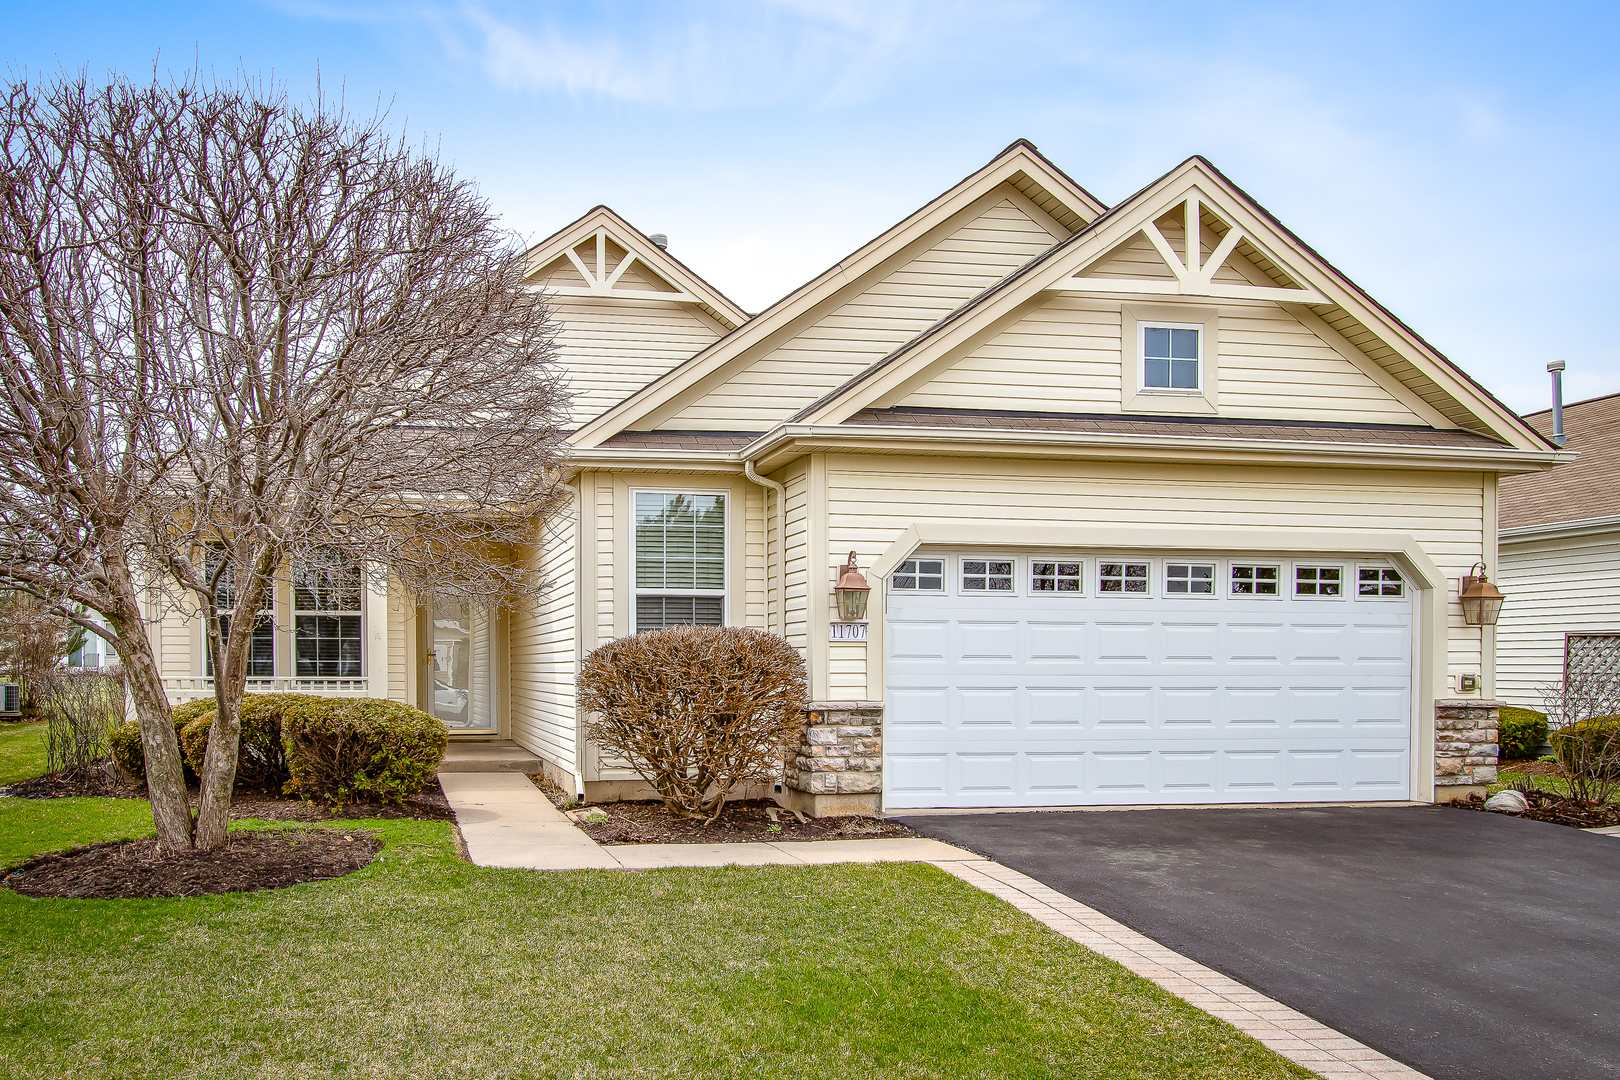 Photo for 11707 Stonewater Crossing, HUNTLEY, IL 60142 (MLS # 10343060)